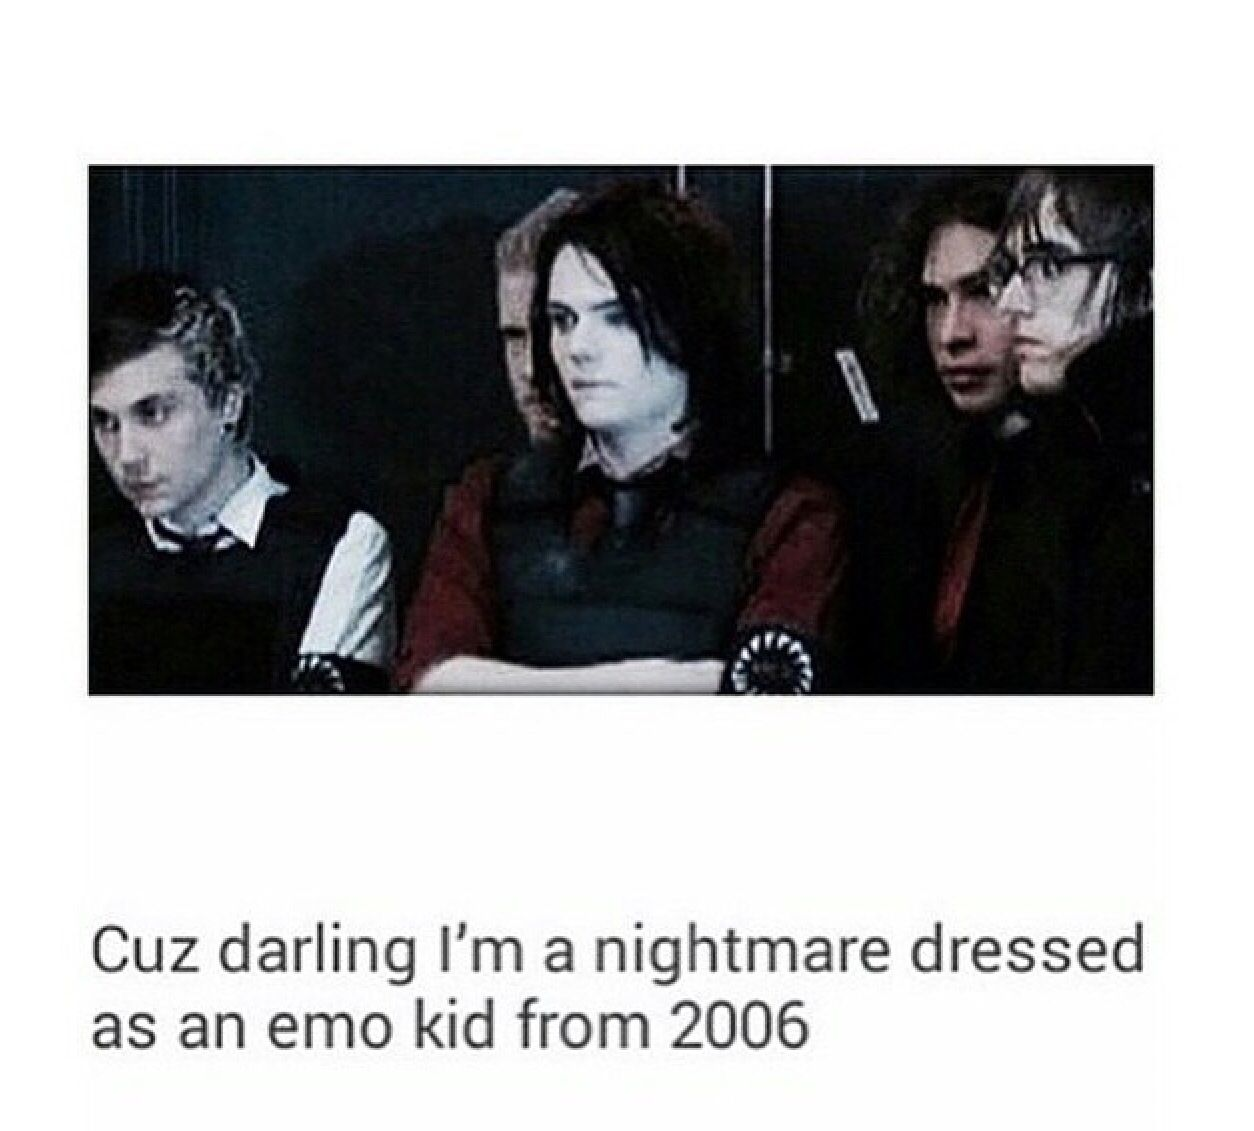 Haha The Only Way Im Singing This Lyric From Now On Emo Shit Eyeliner My Darling Not I Say As Smudge While Wearing Band Merch And Listening To Screamo